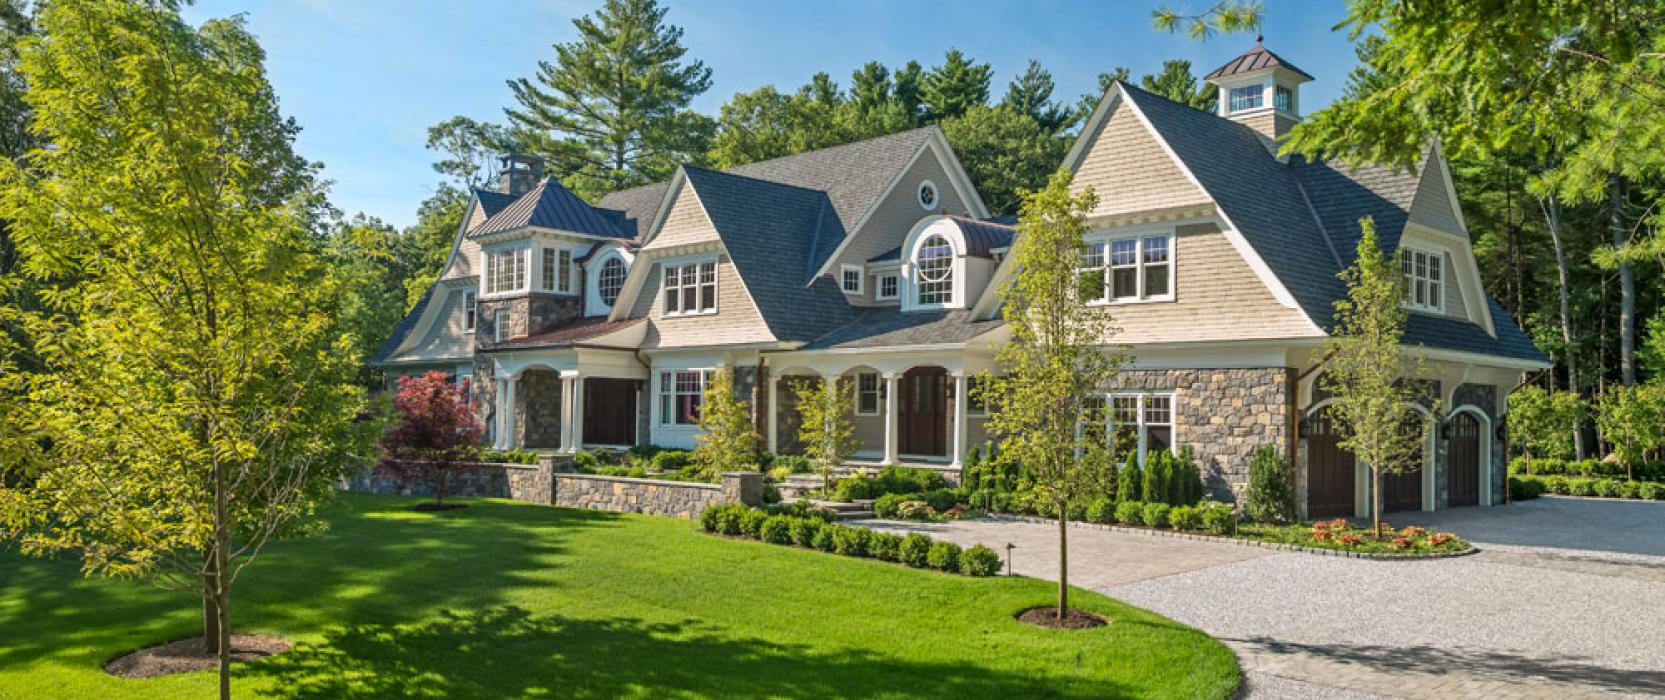 Weston Massachusetts custom home build and architecture